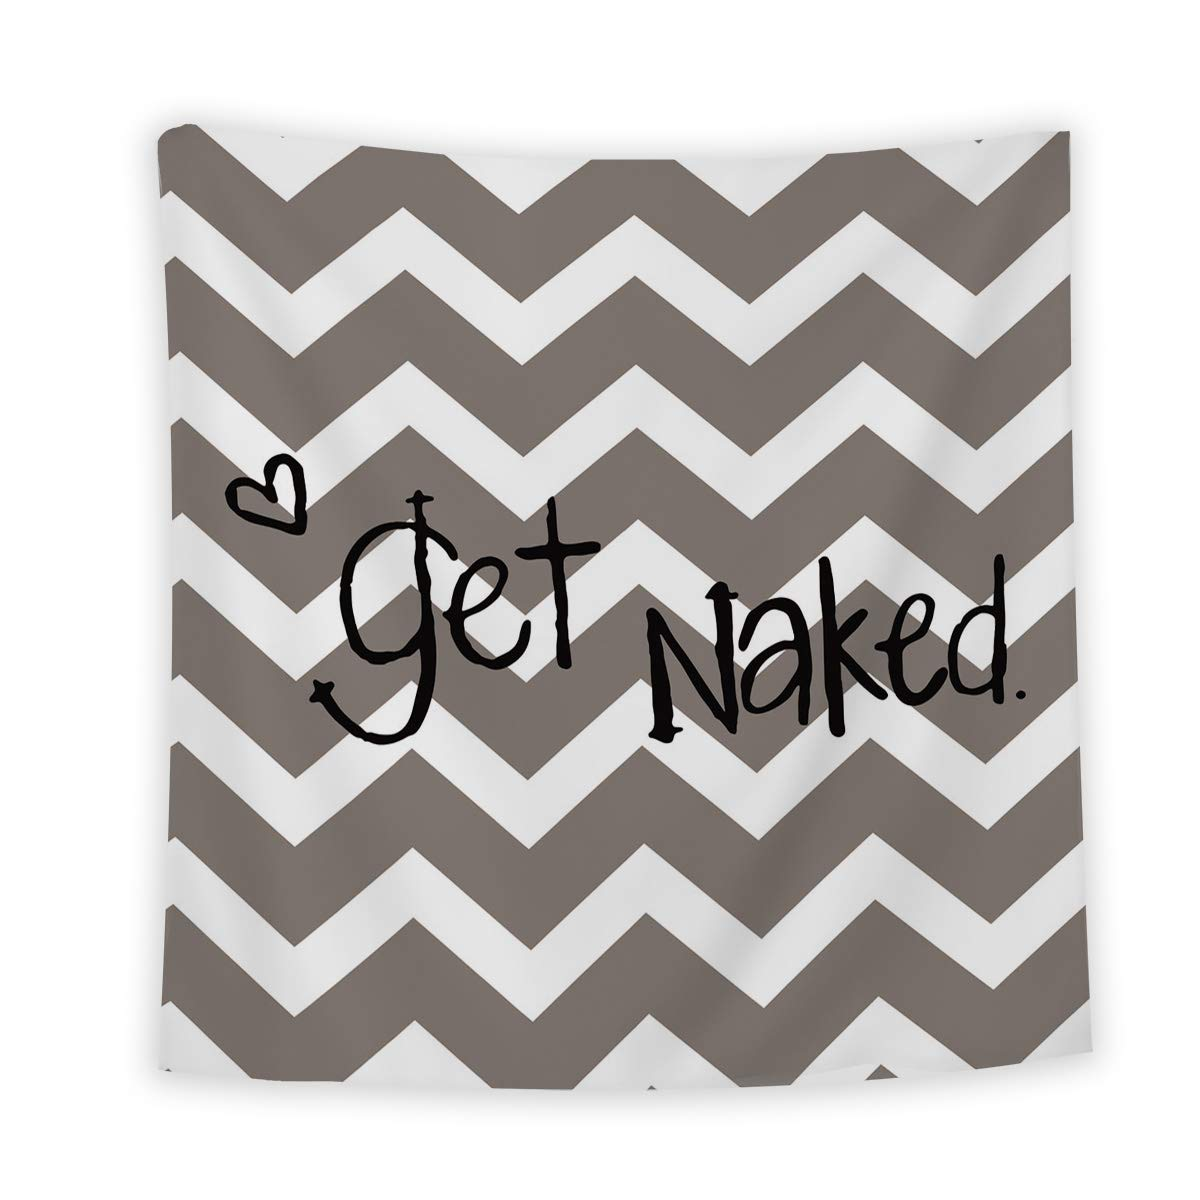 Libaoge Artistic Tapestry Wall Hanging, Zigzag Tapestry Funny English Saying Get Naked Wall Tapestries for Home Living Room Dorm Decor Bedroom Decorative, 59x79 Inches